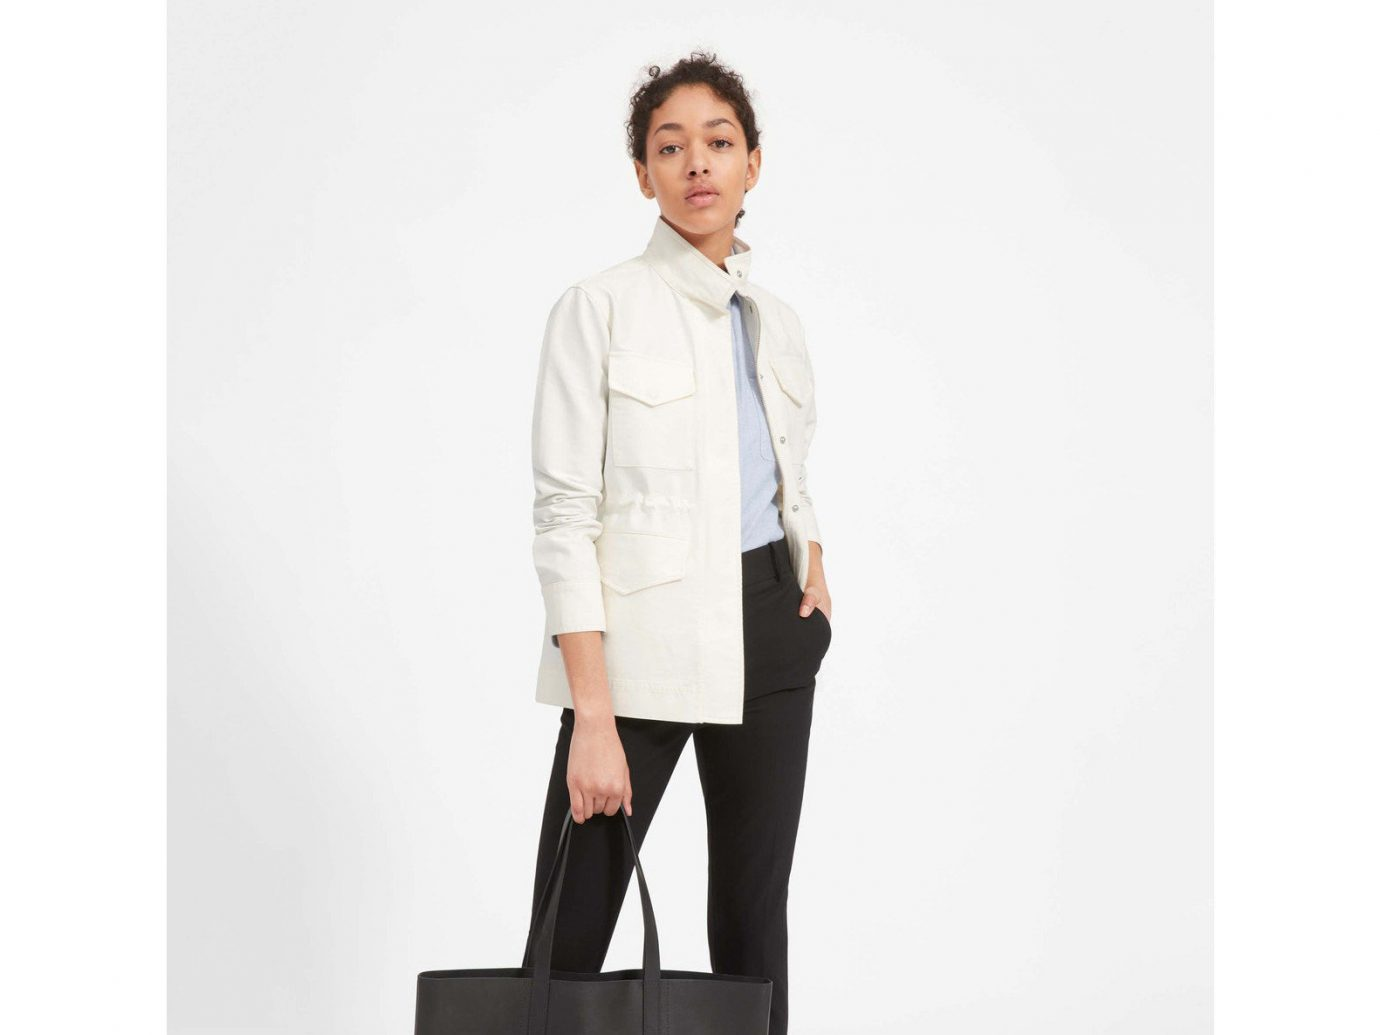 Packing Tips Spring Travel Style + Design Travel Shop standing person posing clothing suit wearing fashion model formal wear outerwear coat dressed jacket beige professional gentleman sleeve top trouser clothes